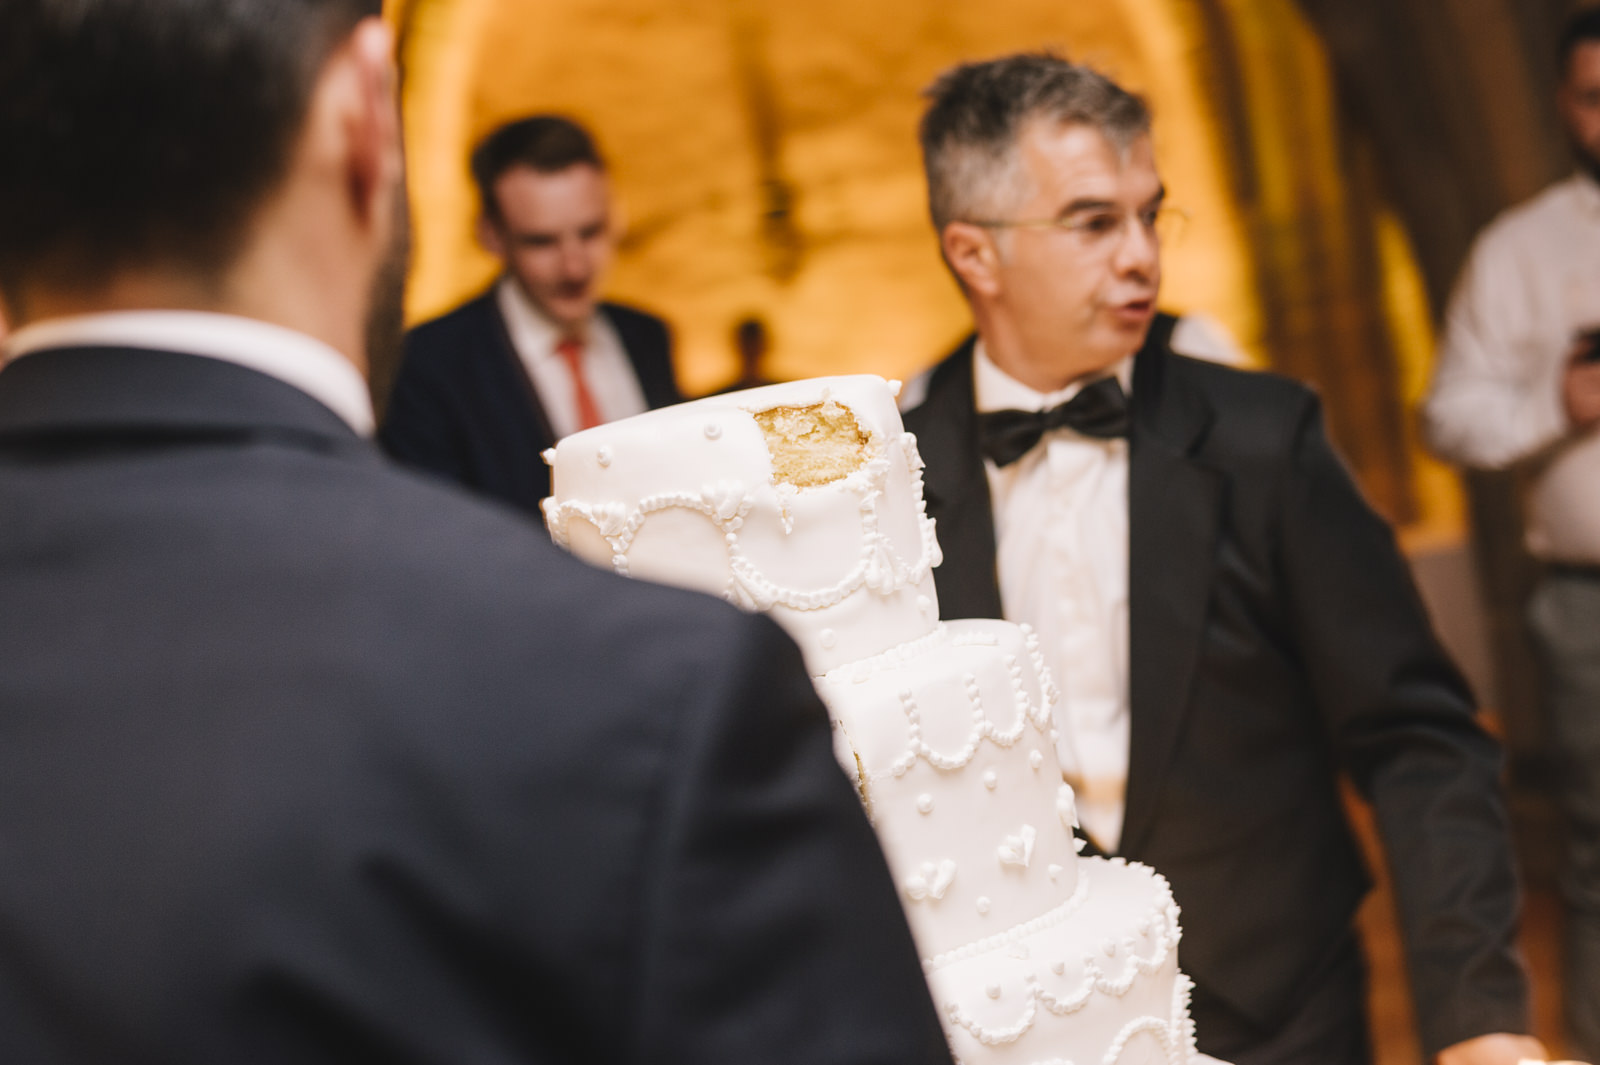 the maitre and his assistant caring the wedding cake